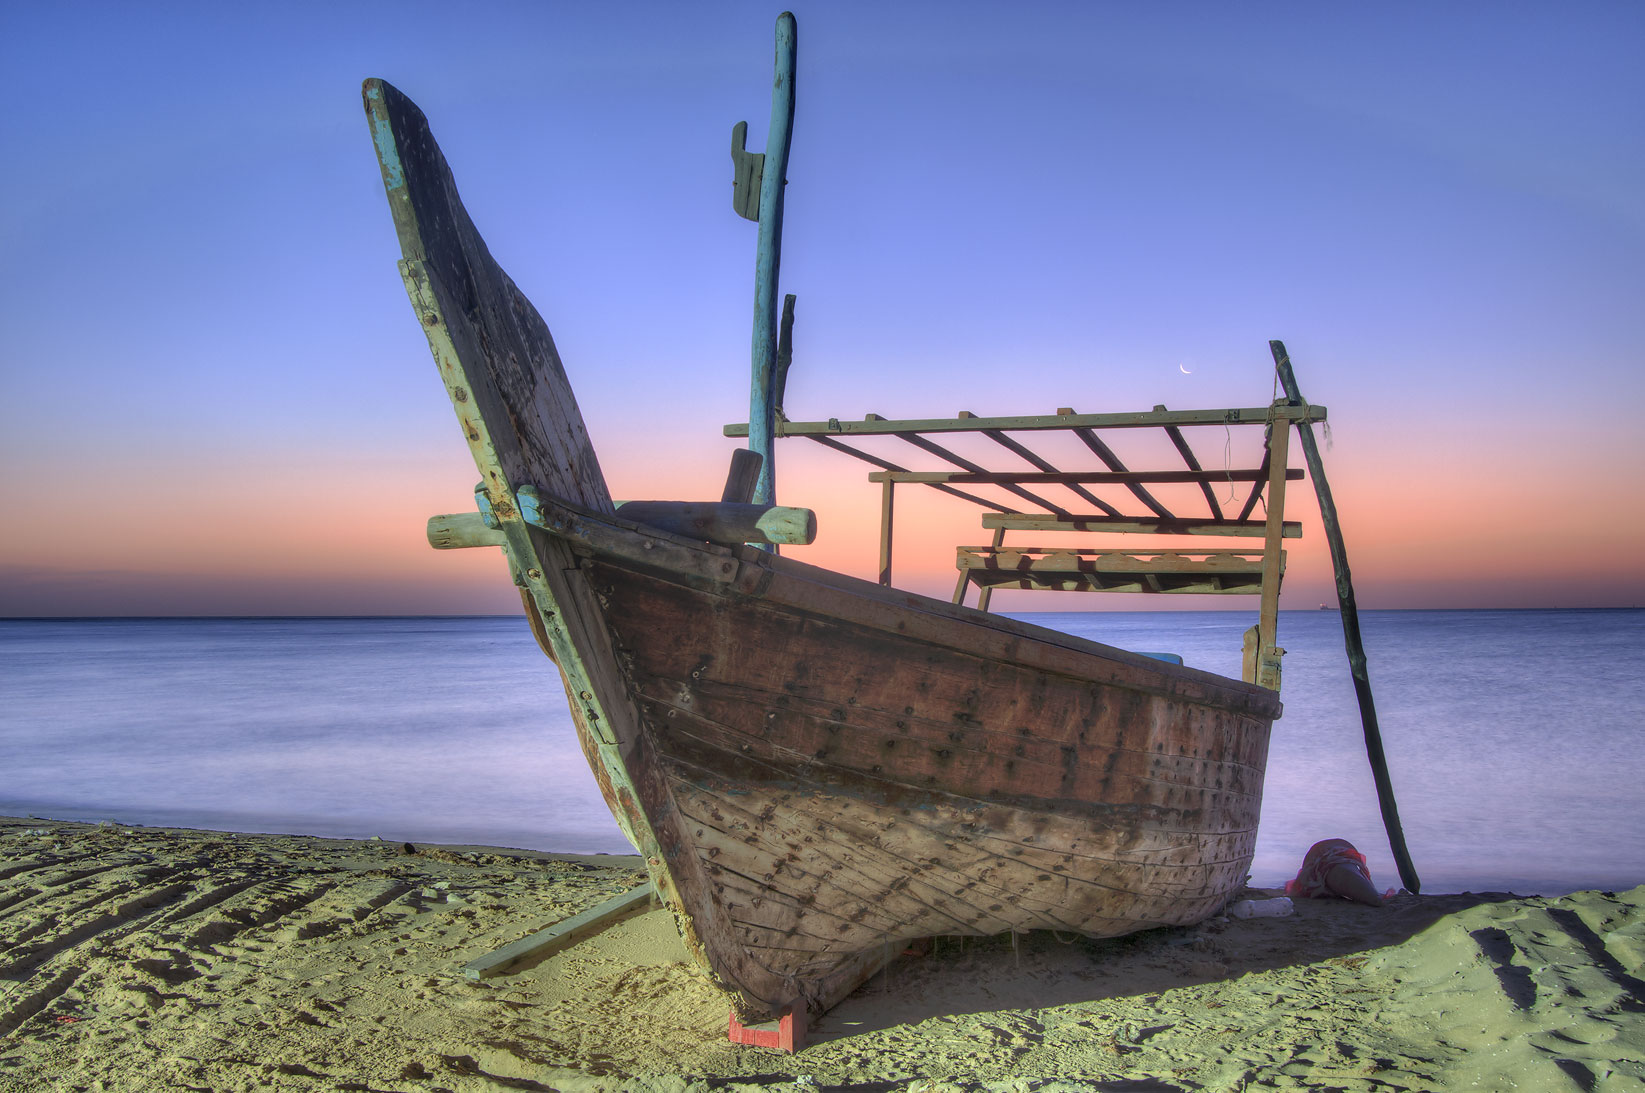 Dhow fishing boat on a beach at sunrise. Al Wakrah, Qatar